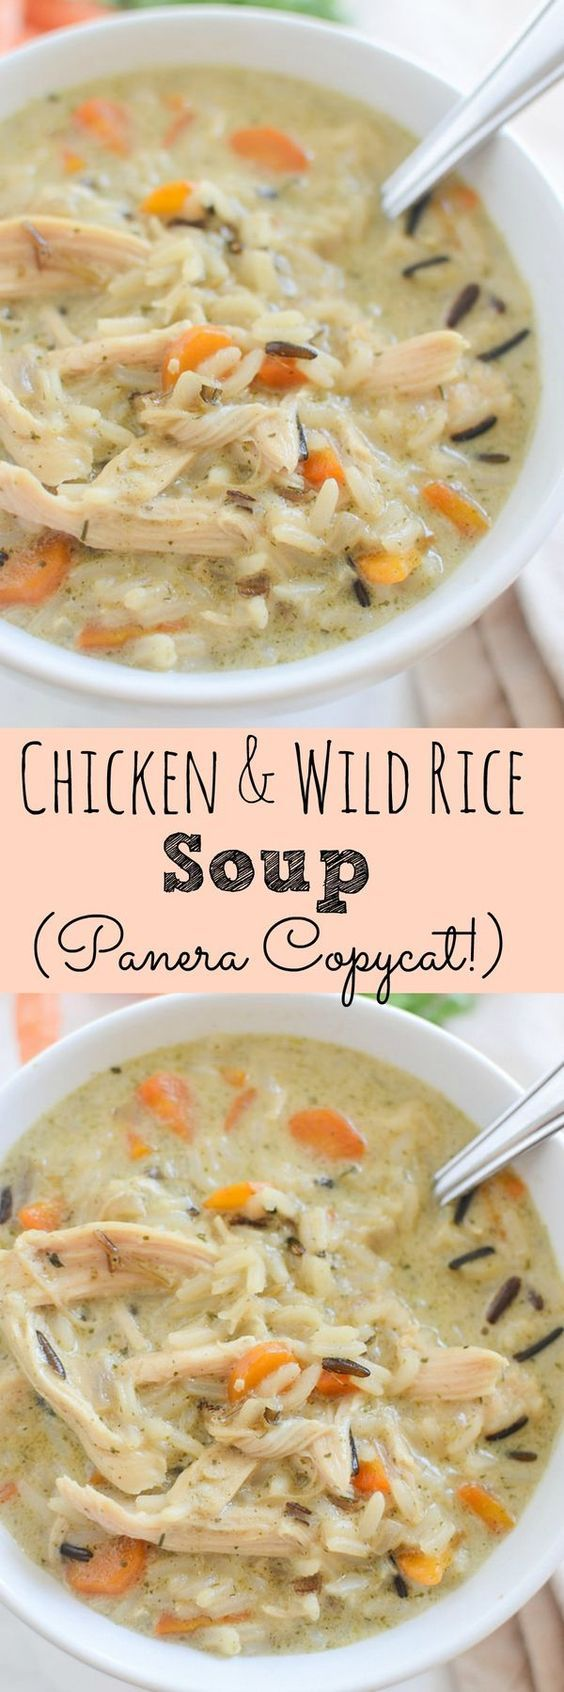 Copycat Recipe For Panera S Chicken And Wild Rice Soup